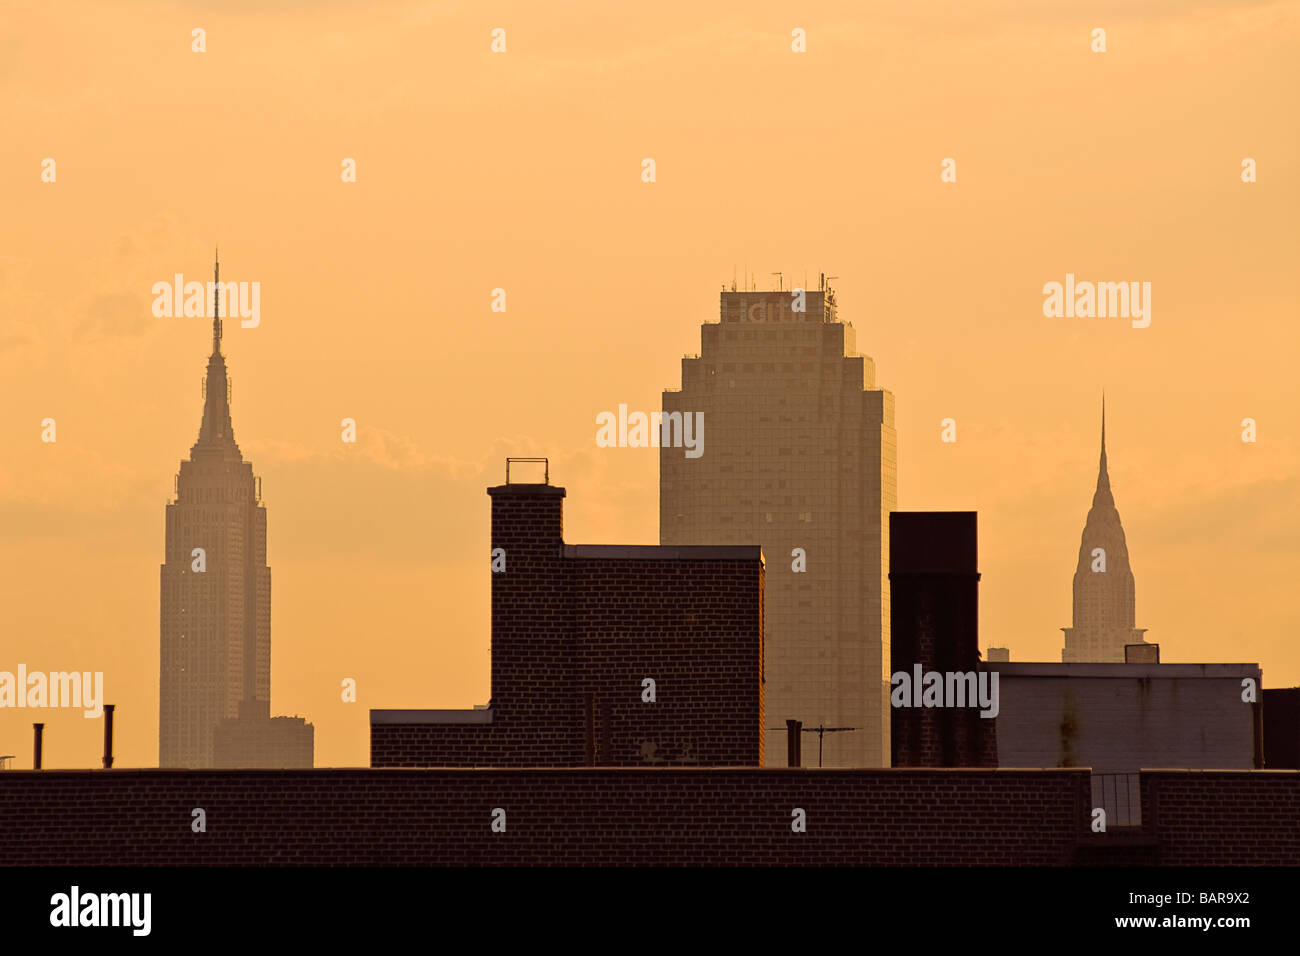 Empire State Building, das Chrysler Building und das Queens Citicorp Building, Long Island City, Queens, New York Stockbild